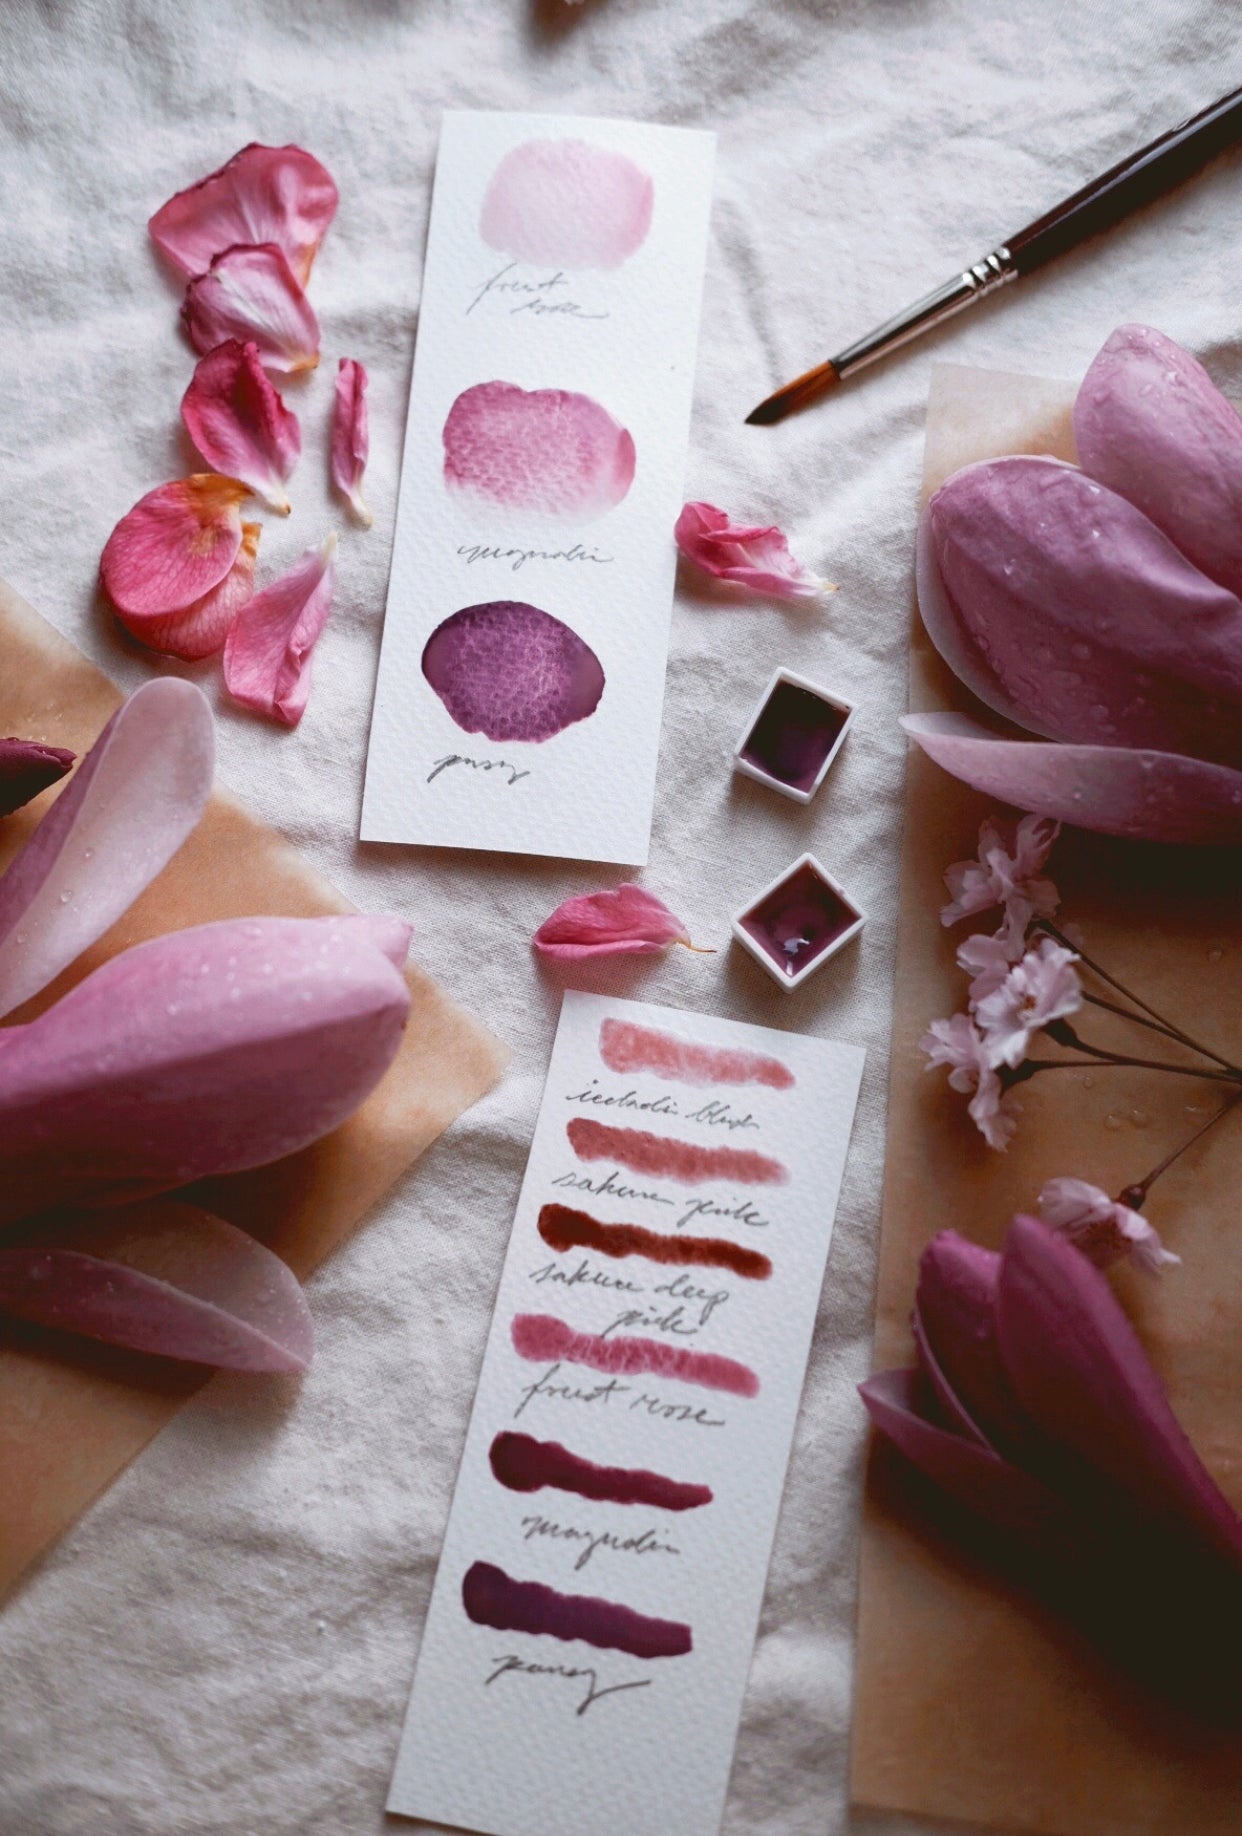 Pink Blossom + Limited edition gemstone watercolor palette